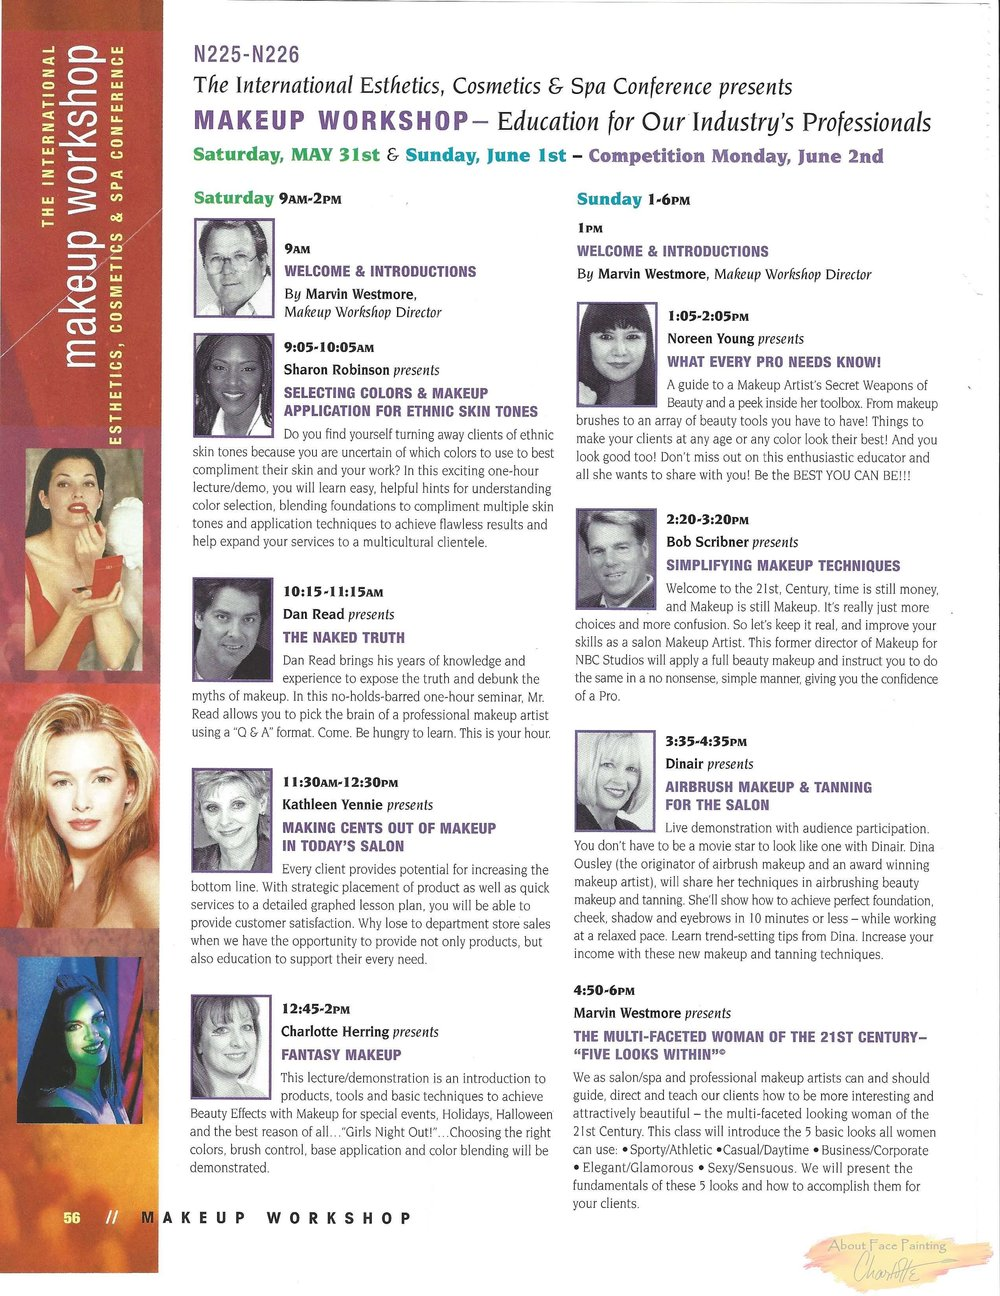 2003 International Esthitics cosmetics and Spa Conference (2).jpg